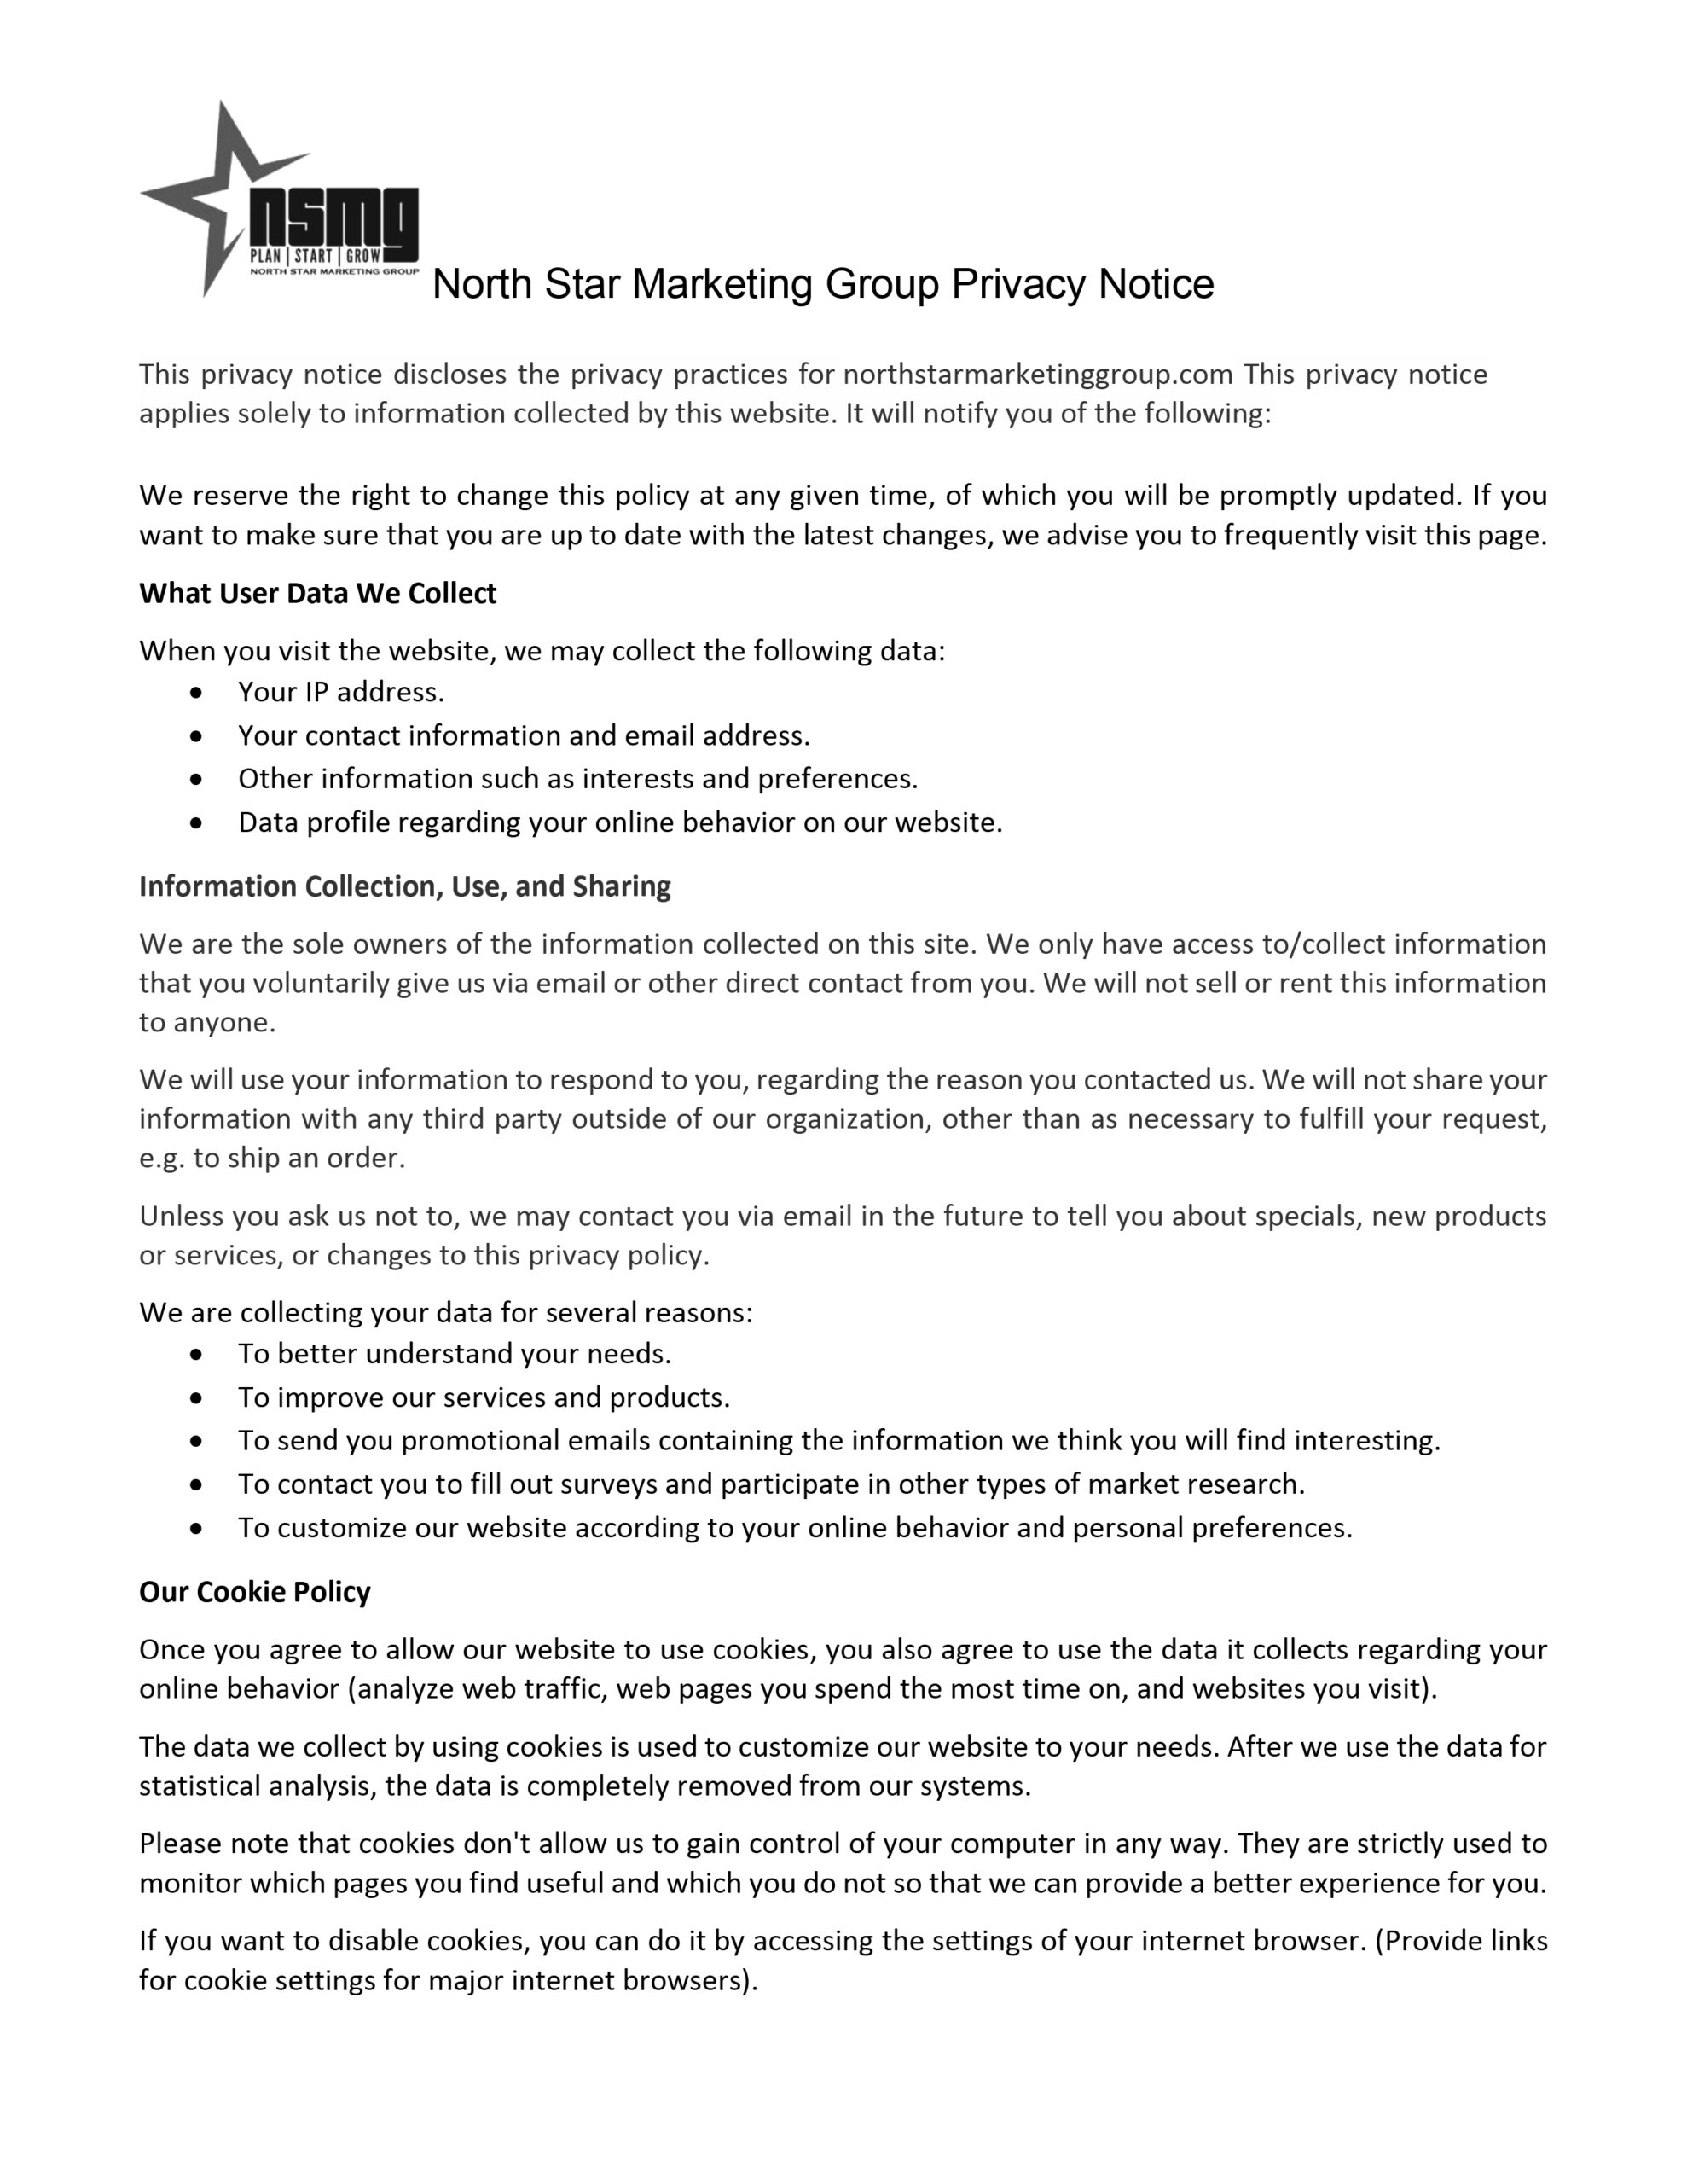 NSMG Privacy Policy page 1